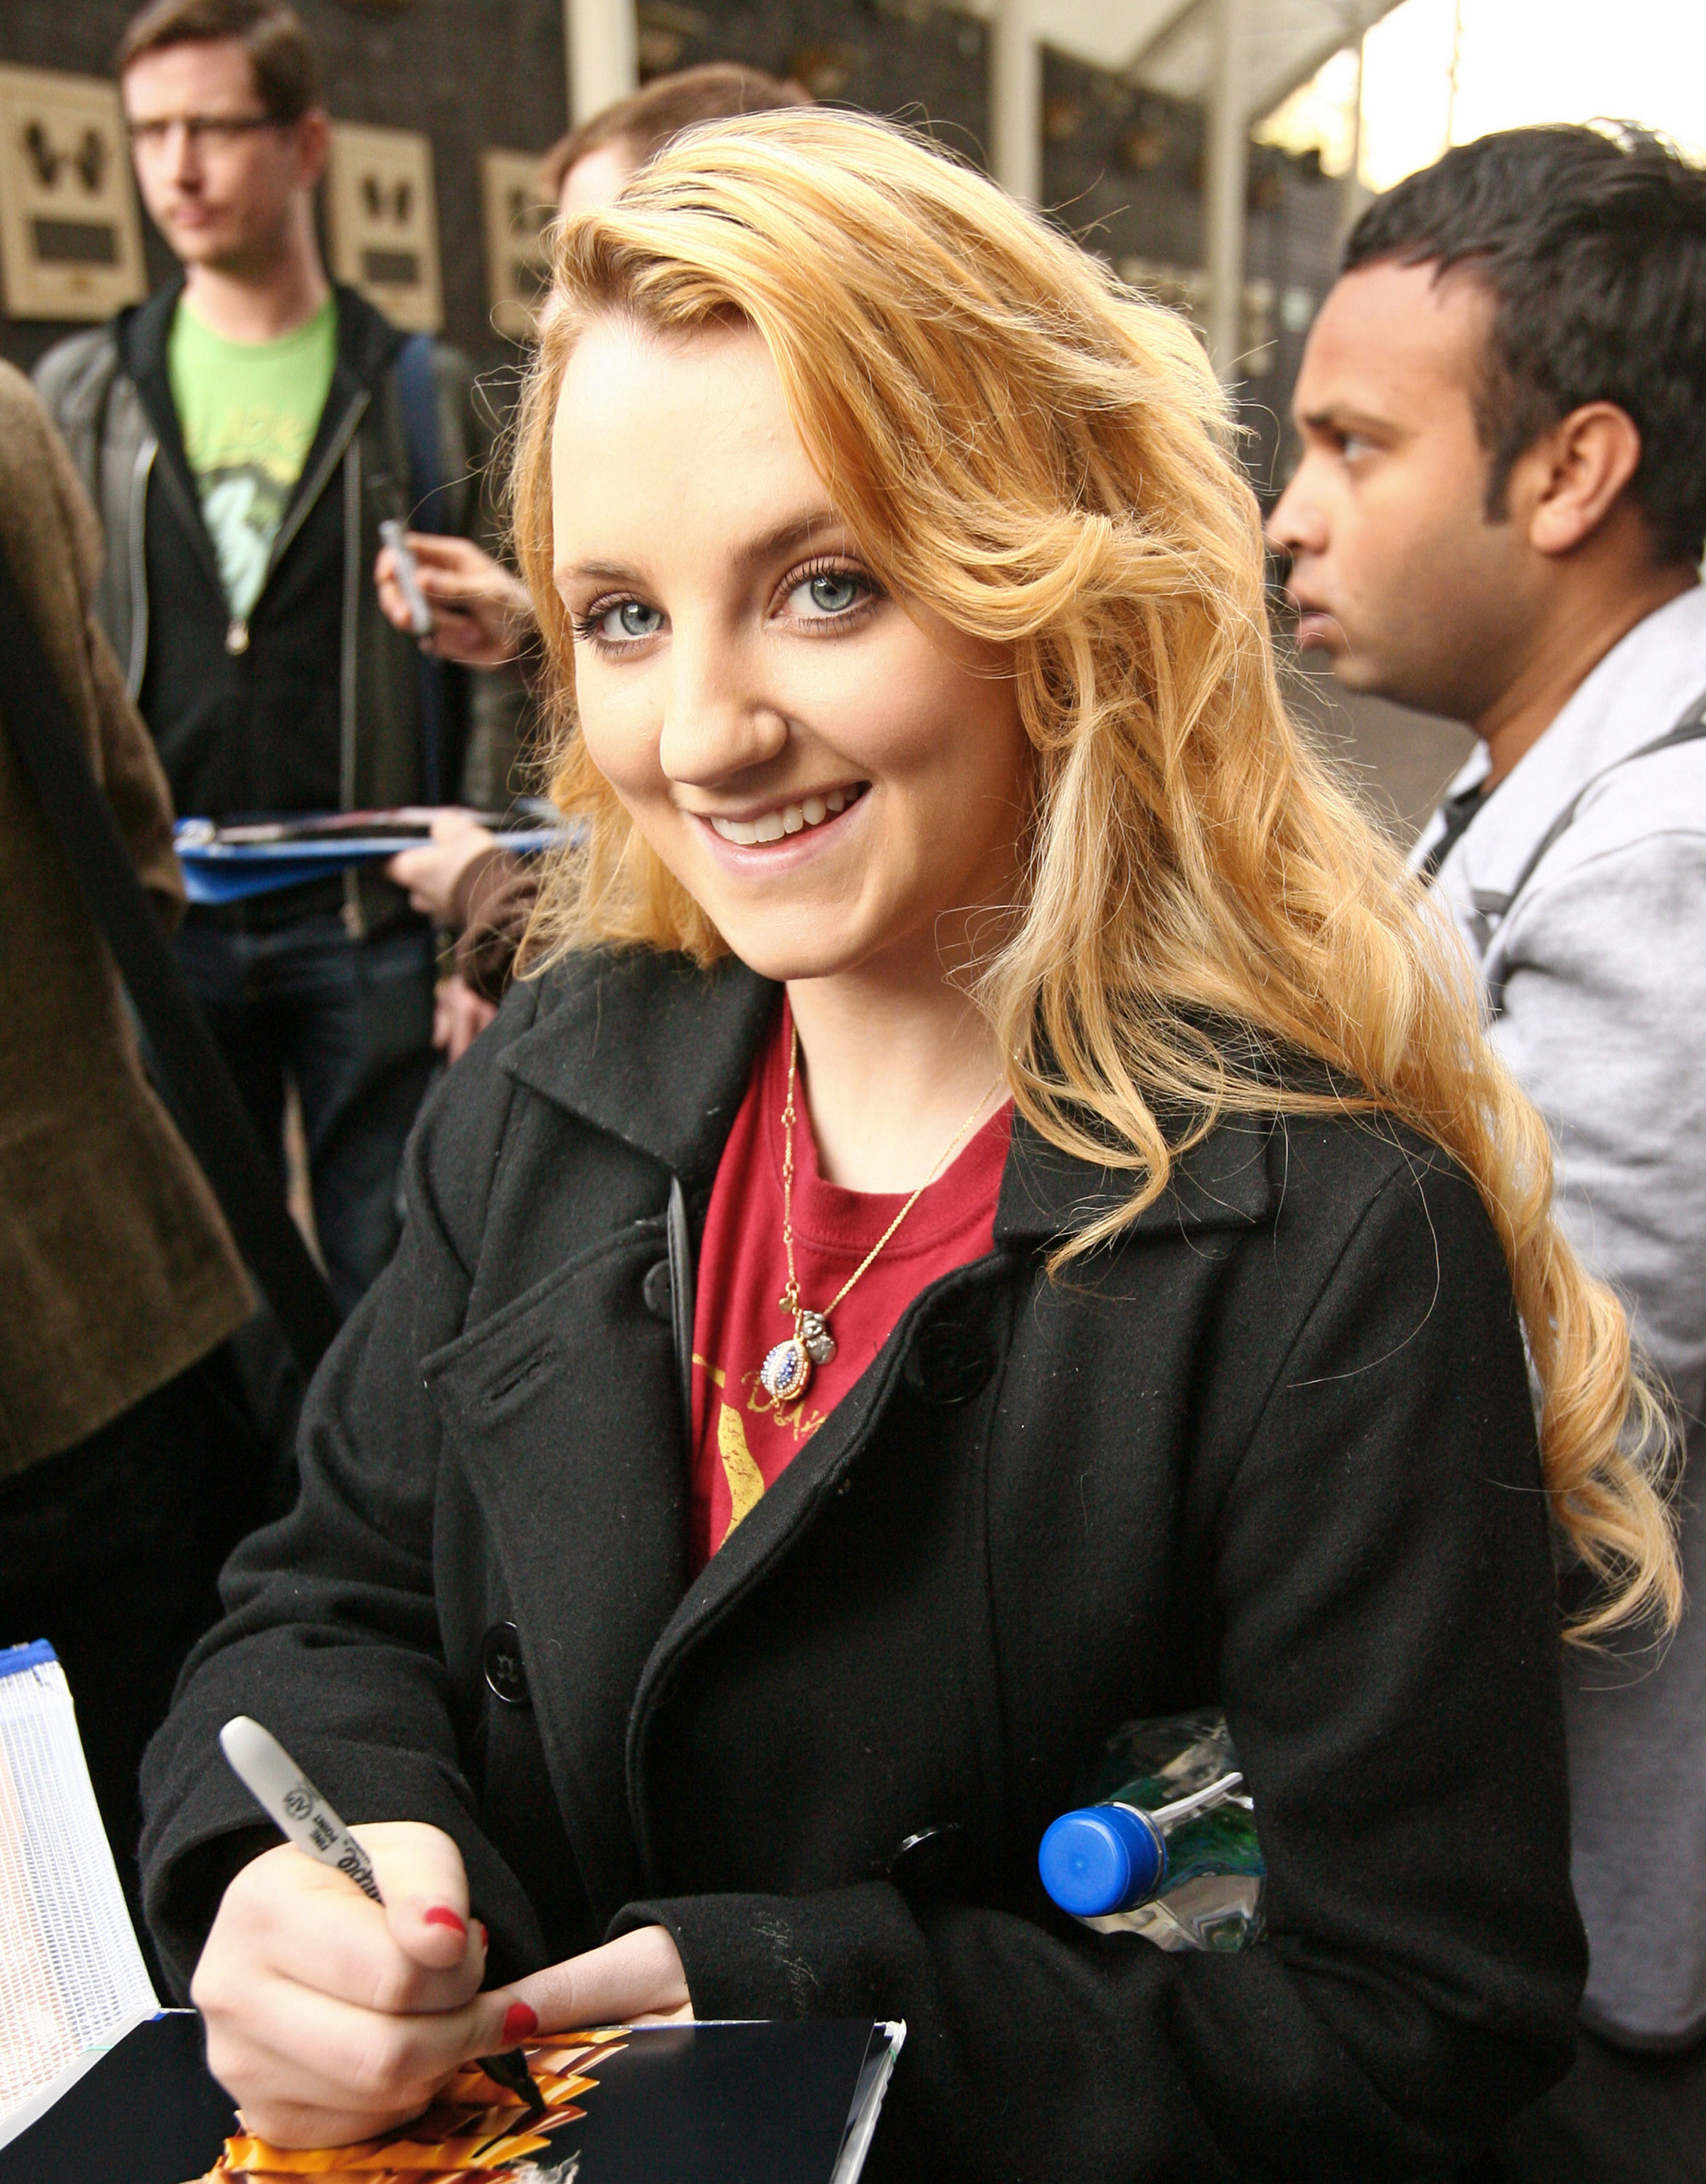 Signing Autographs Outside ITV Studios April 11th, 2011